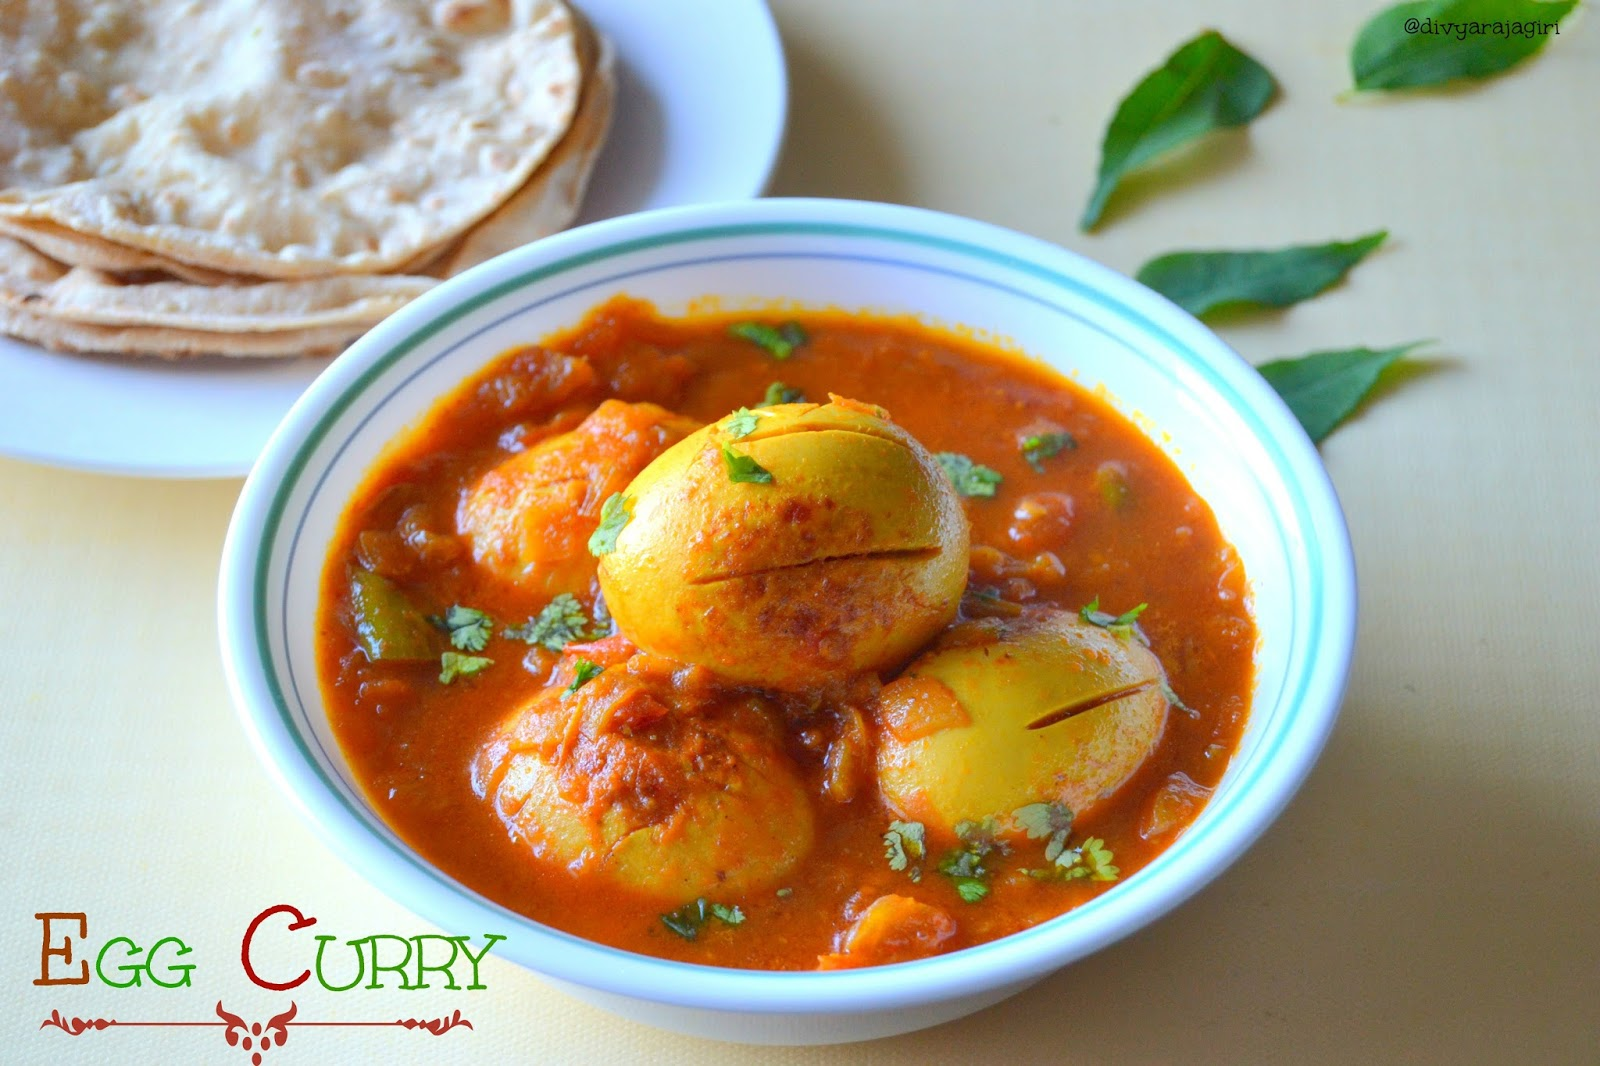 divya's kitchen diaries: SIMPLE EGG CURRY